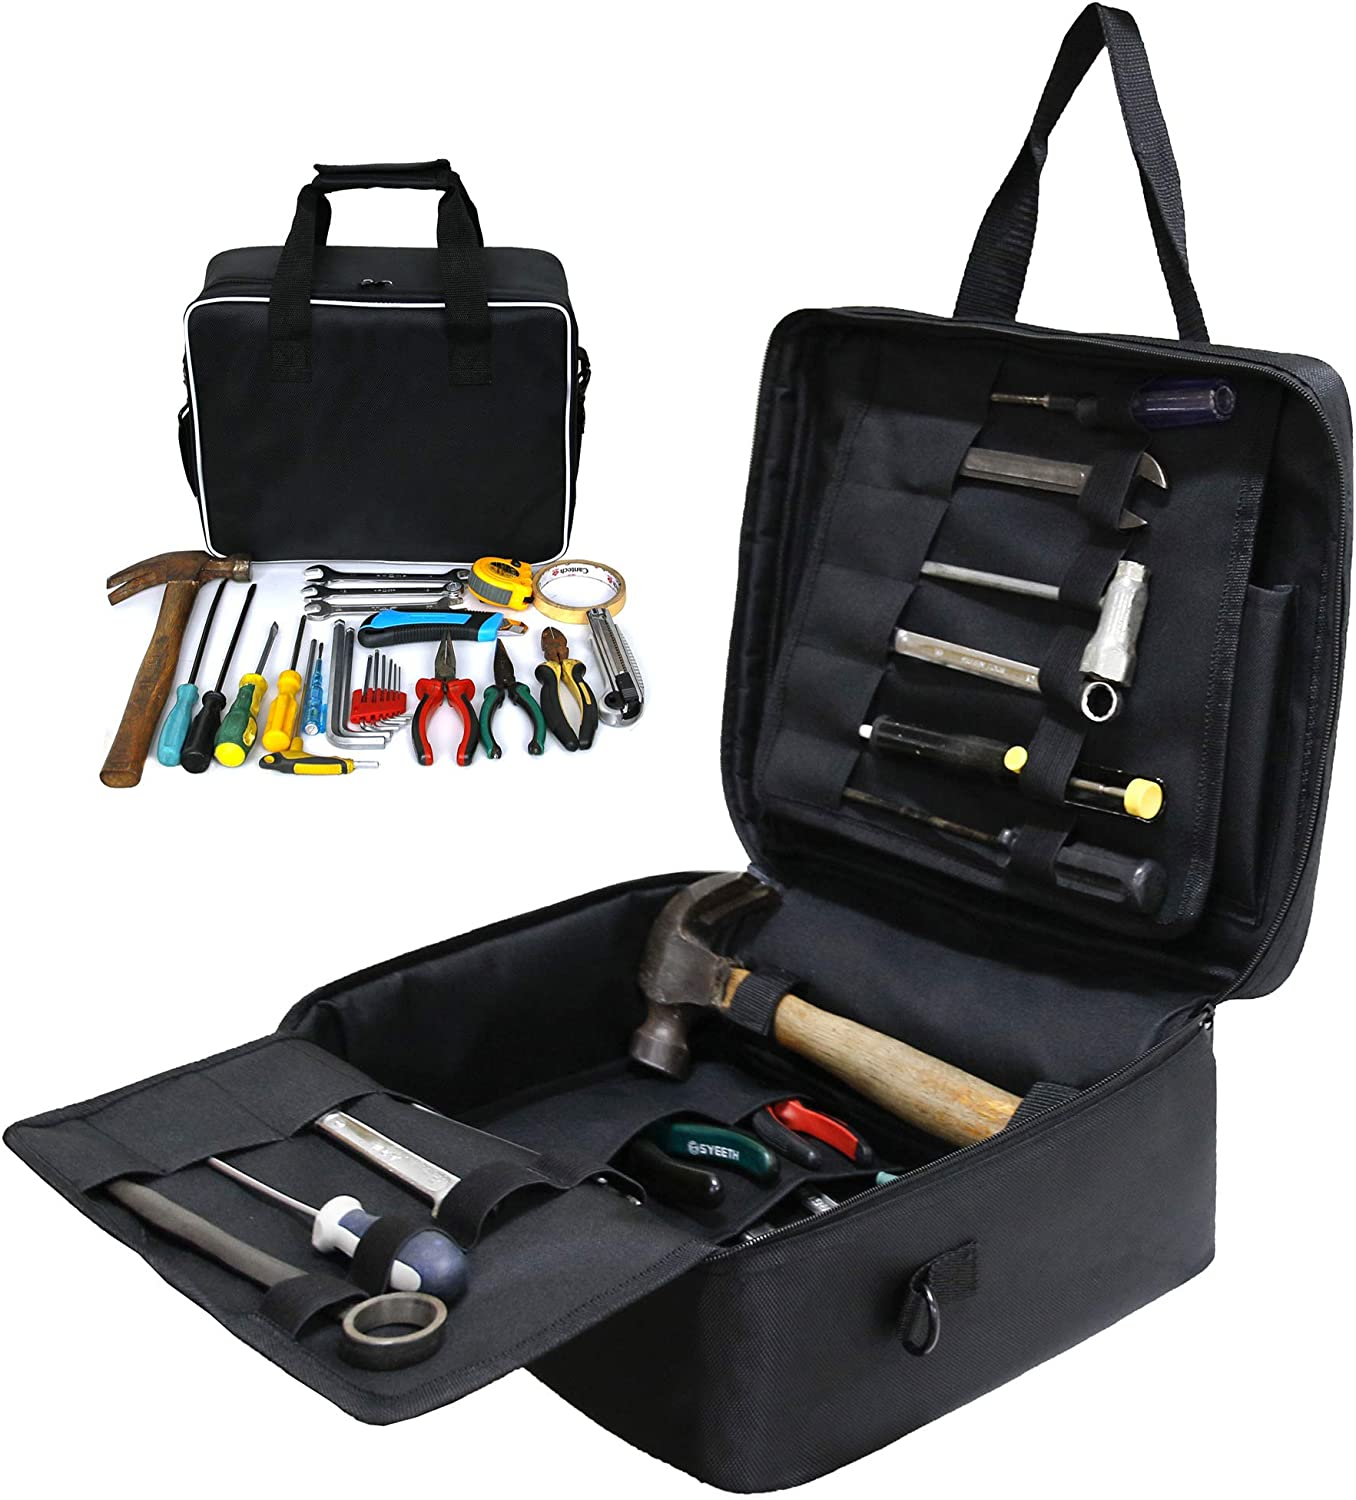 MDSTOP trust Electrician Tool Bag Tote Dealing full price reduction Ref Organizer Carrier with